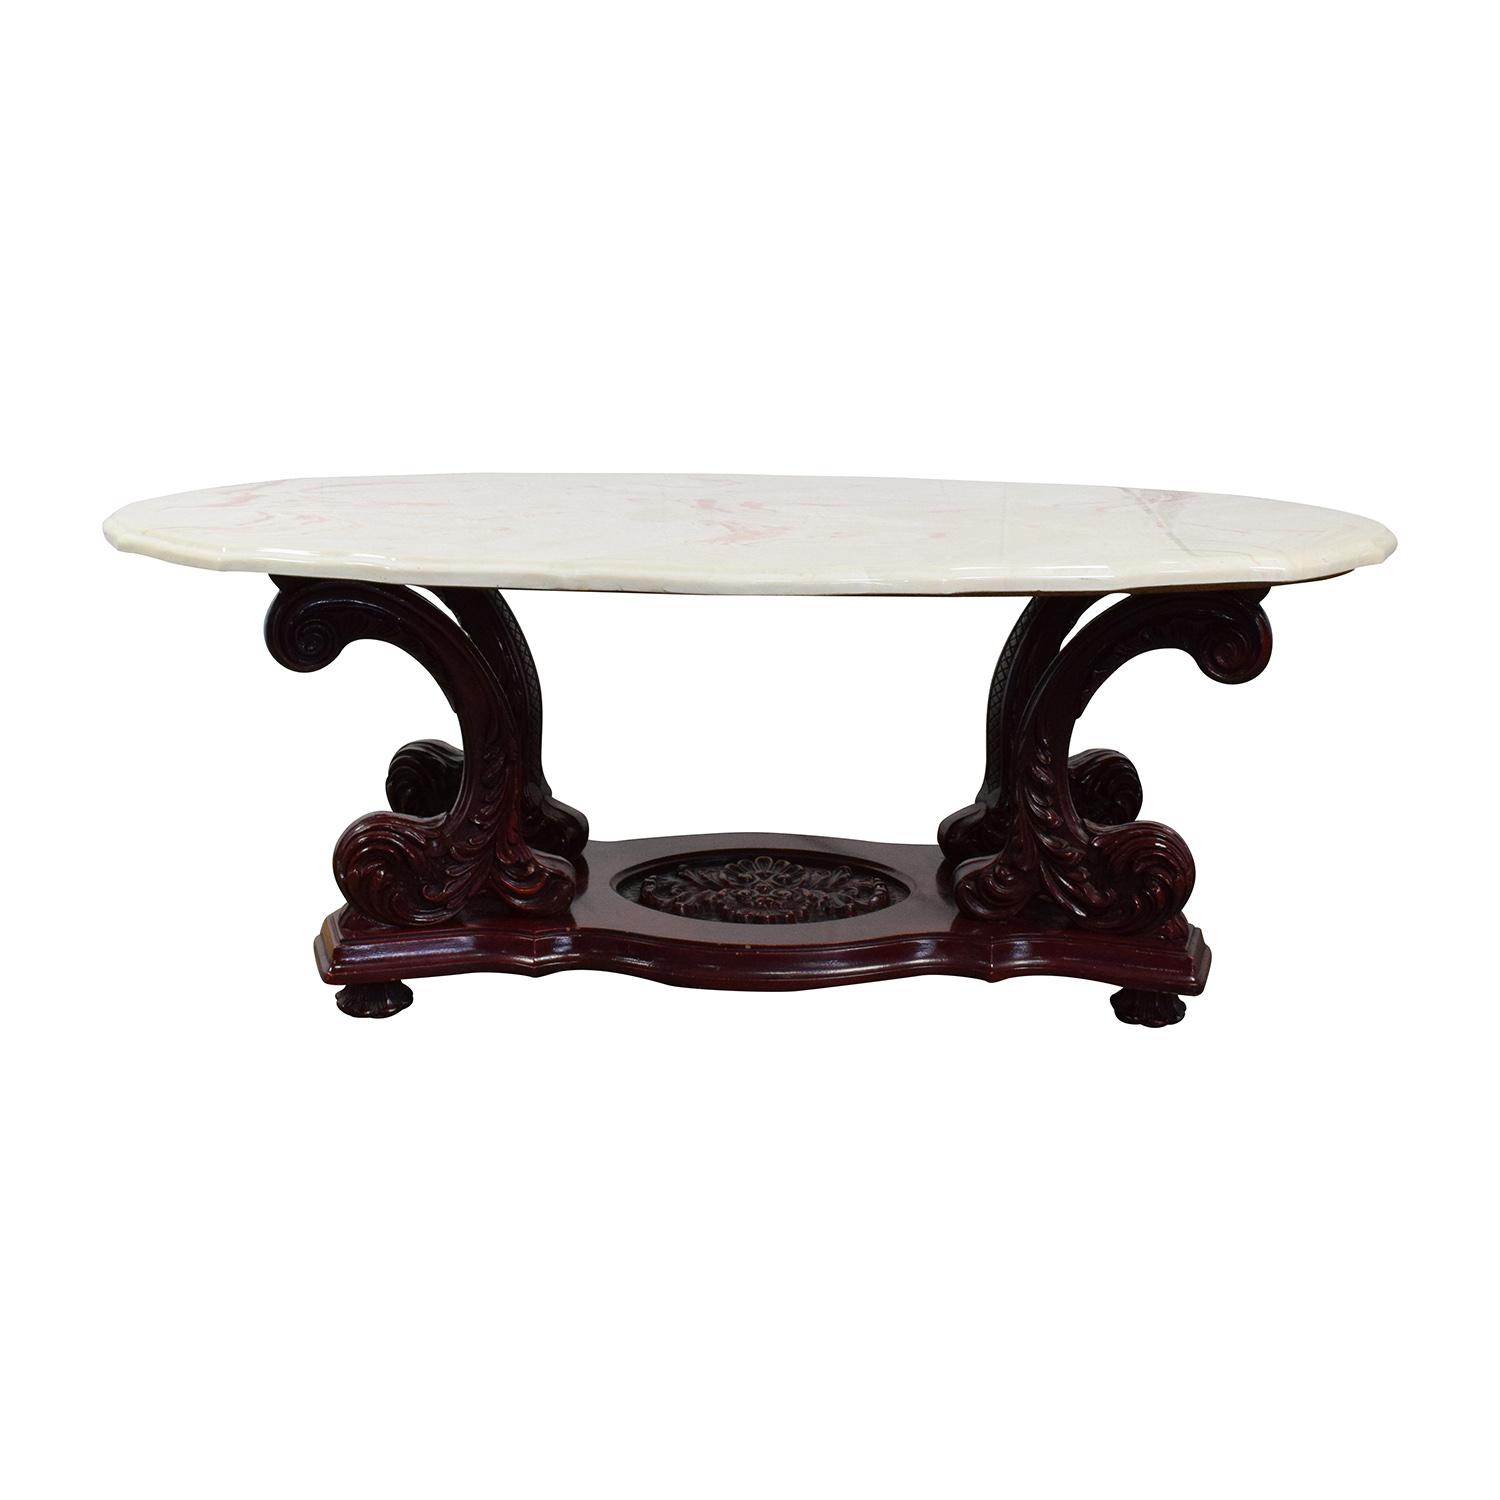 buy Marble Top Coffee Table with Burgundy Carved Wood online